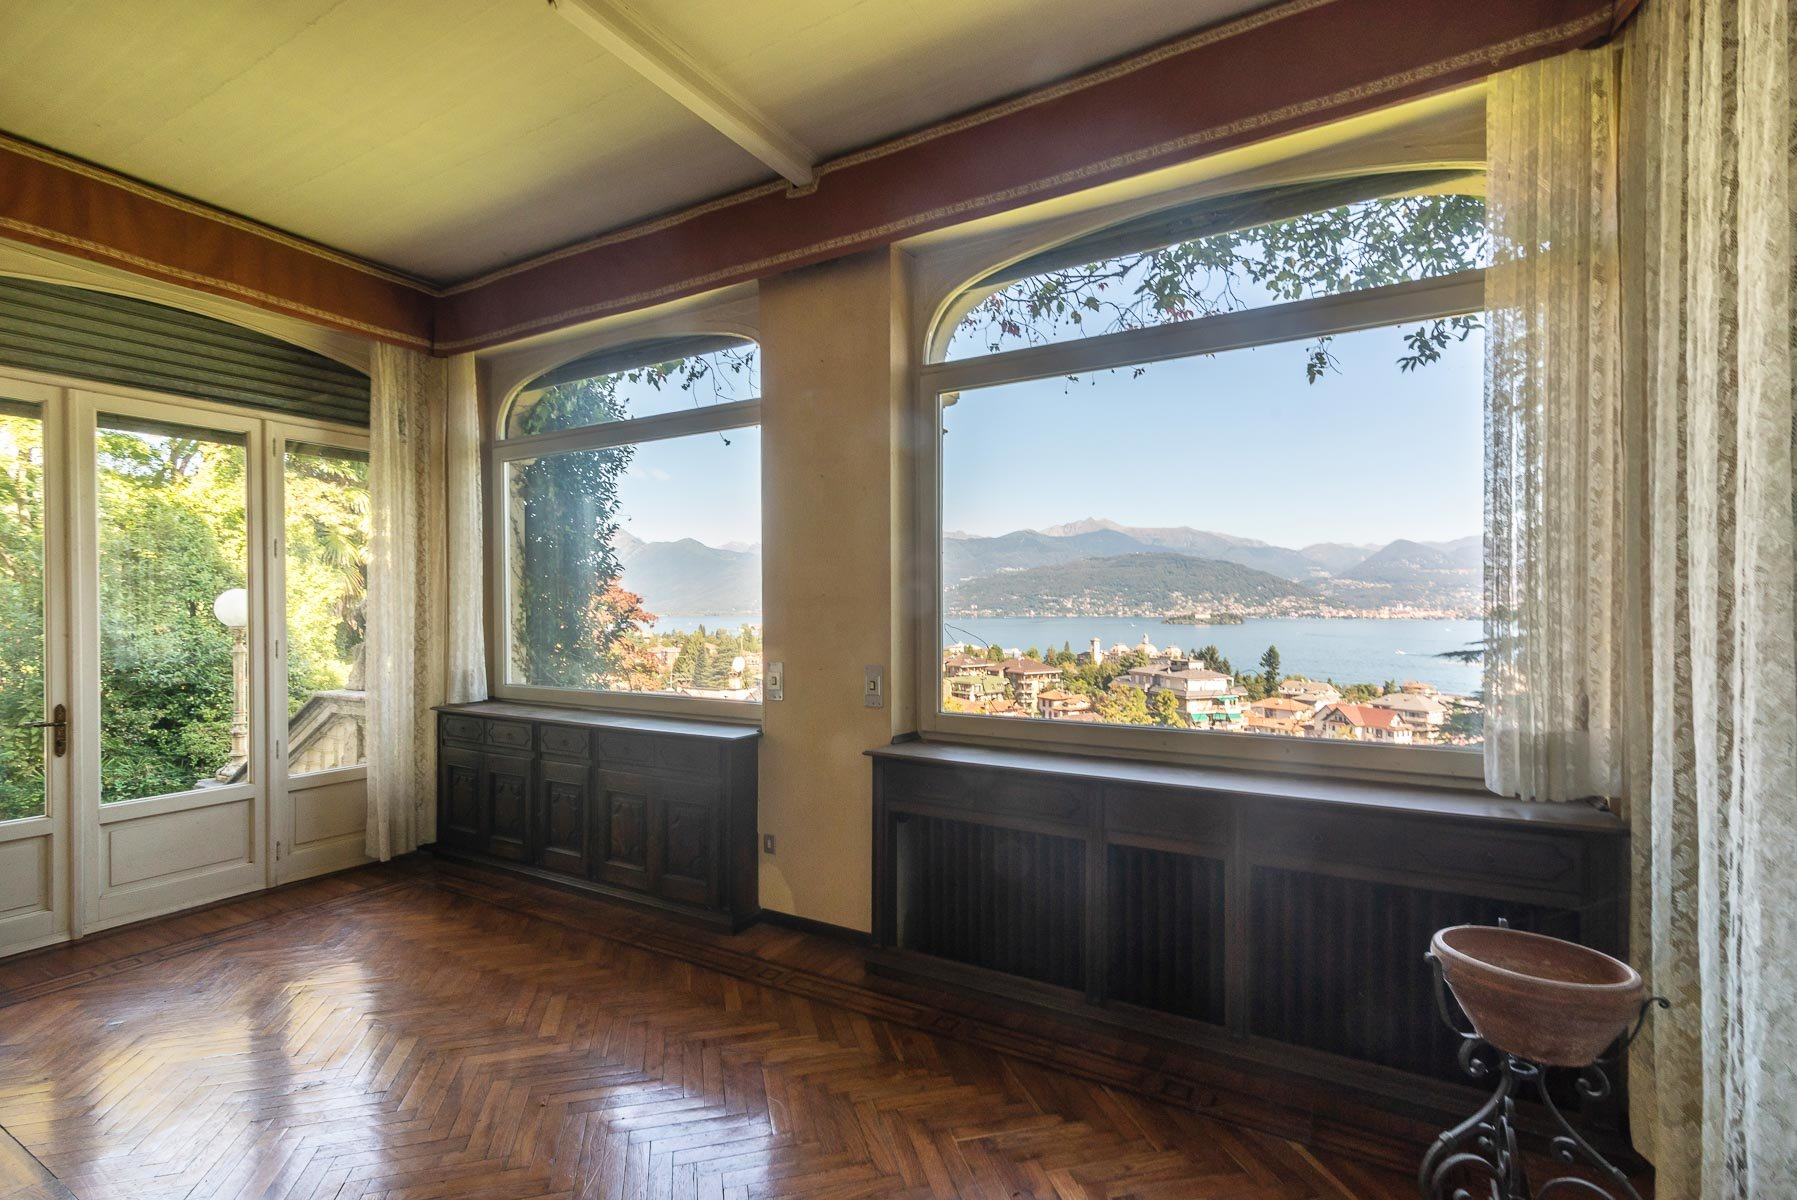 Villa liberty in vendita a Stresa - camera con vista